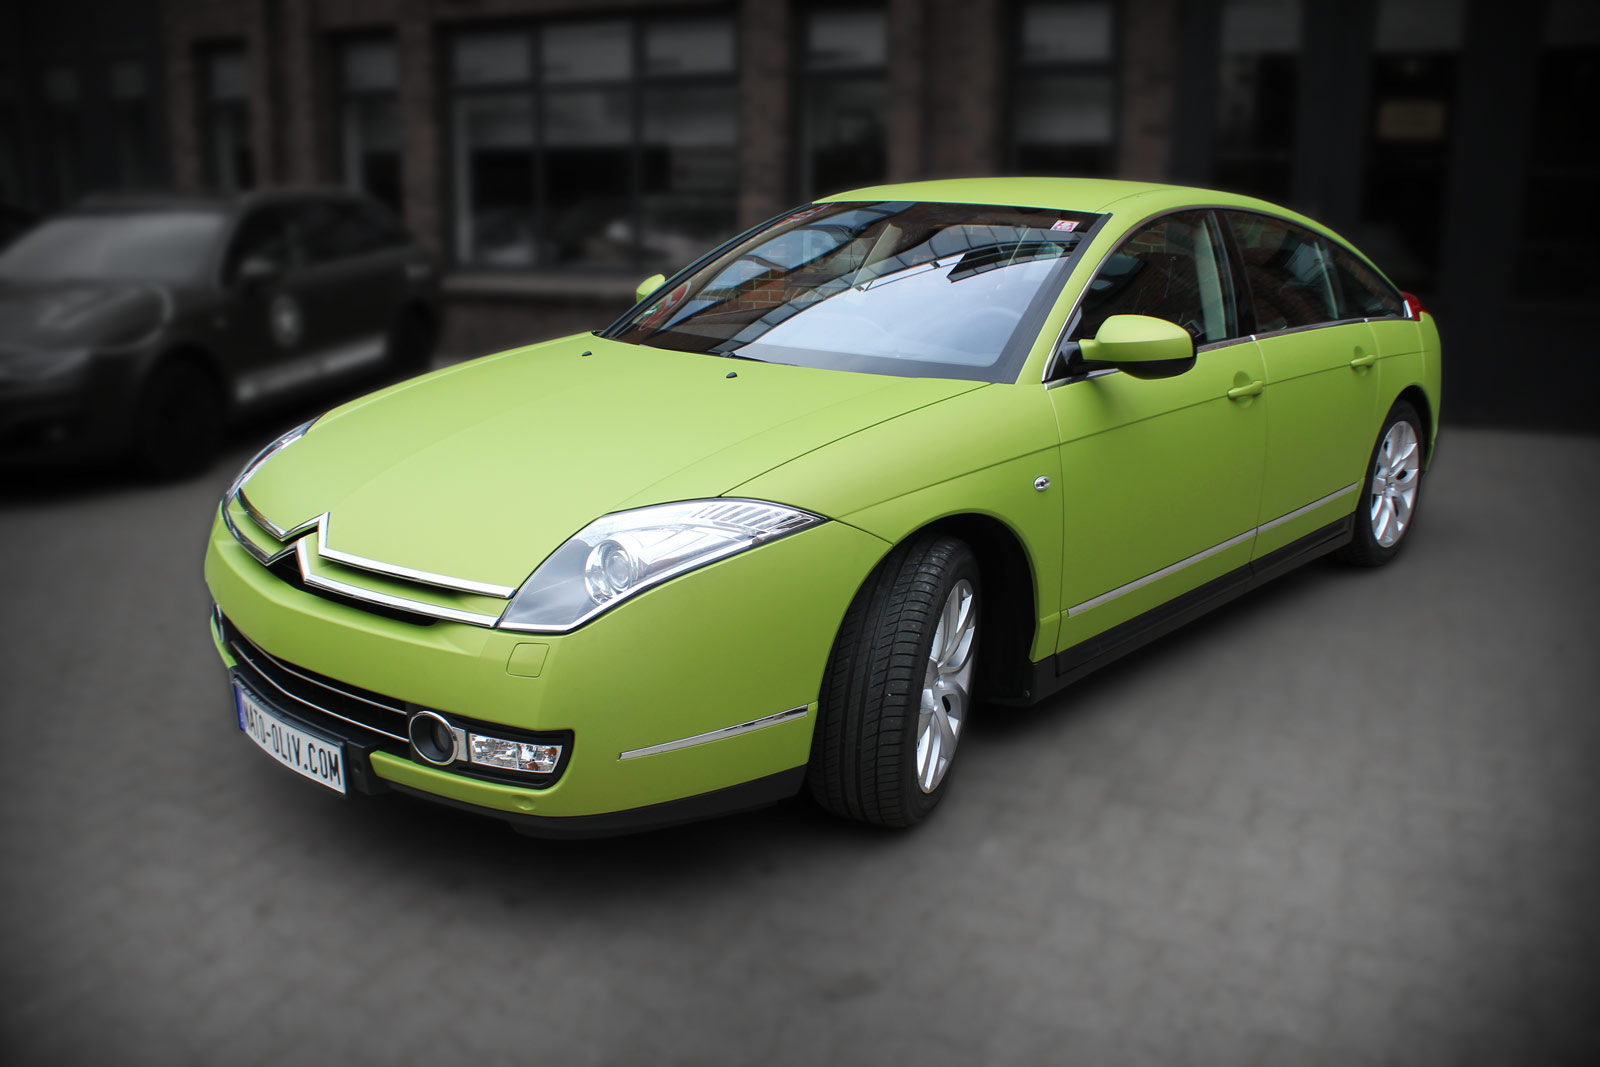 Citroen C6 Limousine foliert in Grün matt metallic.